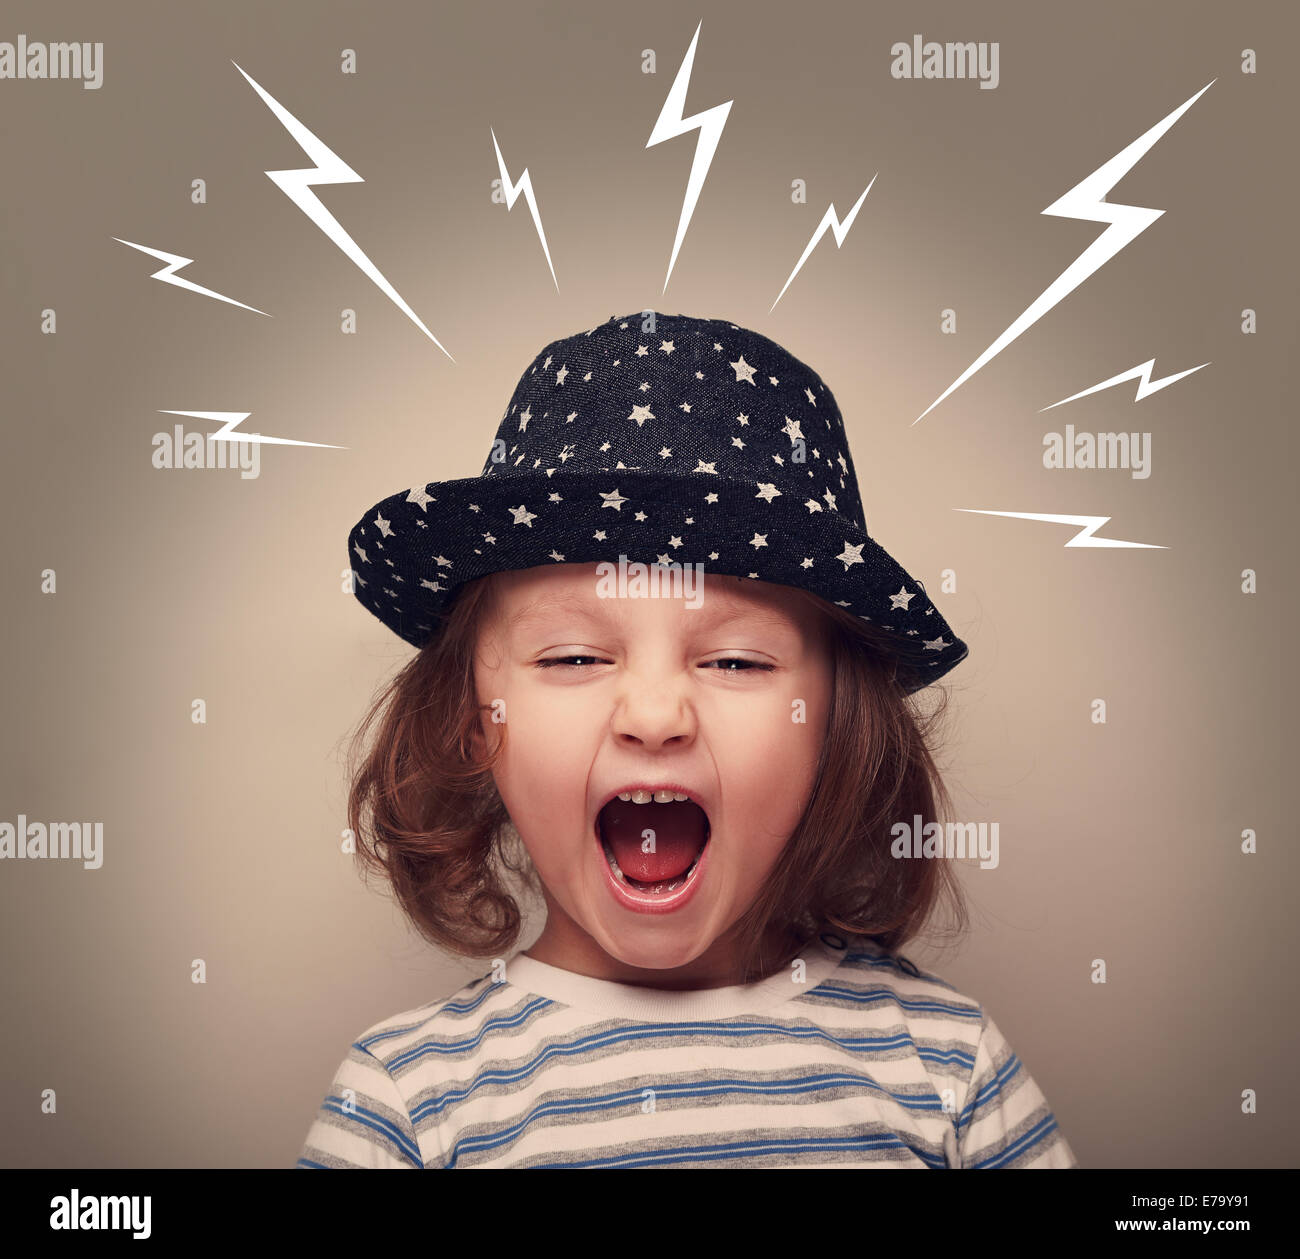 Angry kid in hat screaming with open mouth and white lightnings above on dark background - Stock Image